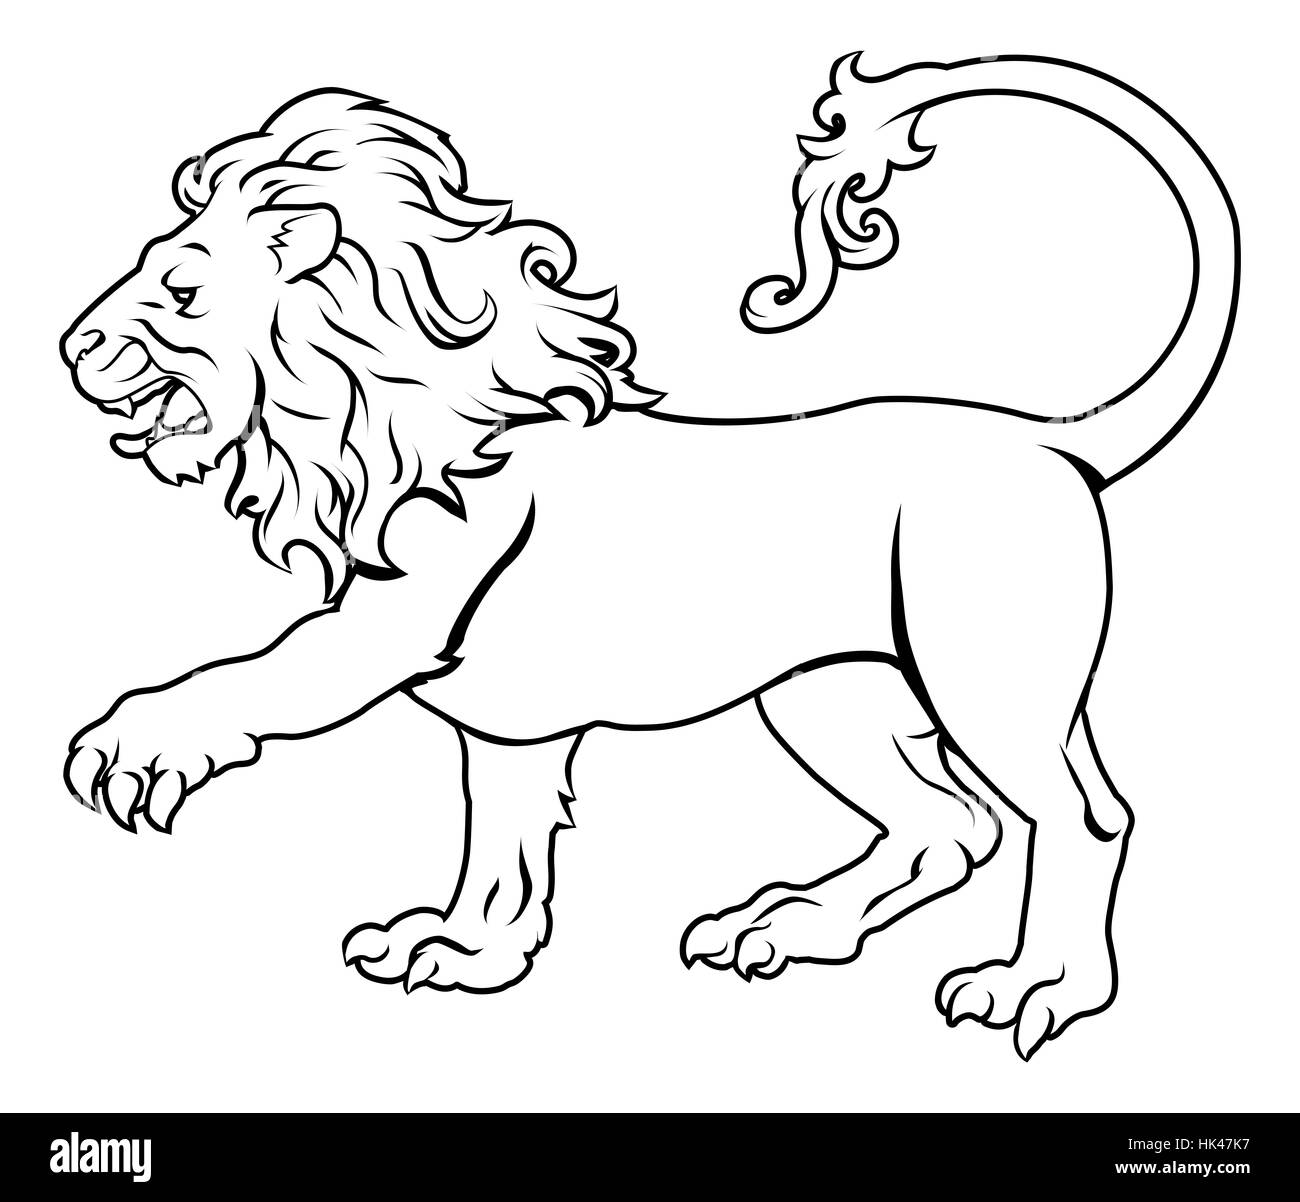 An illustration of a stylised black lion perhaps a lion tattoo - Stock Image